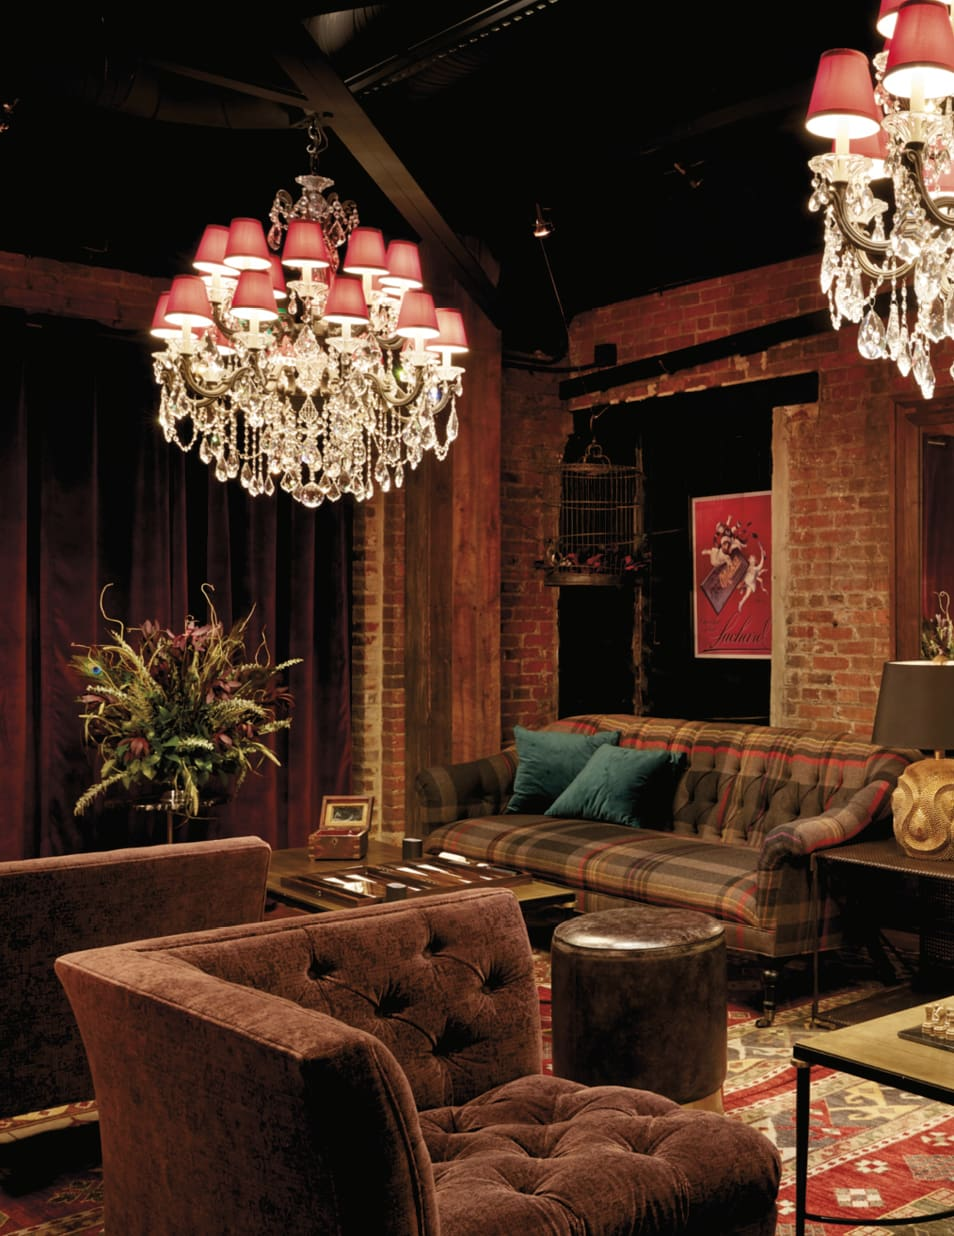 Sitting area with elaborate crystal chandeliers